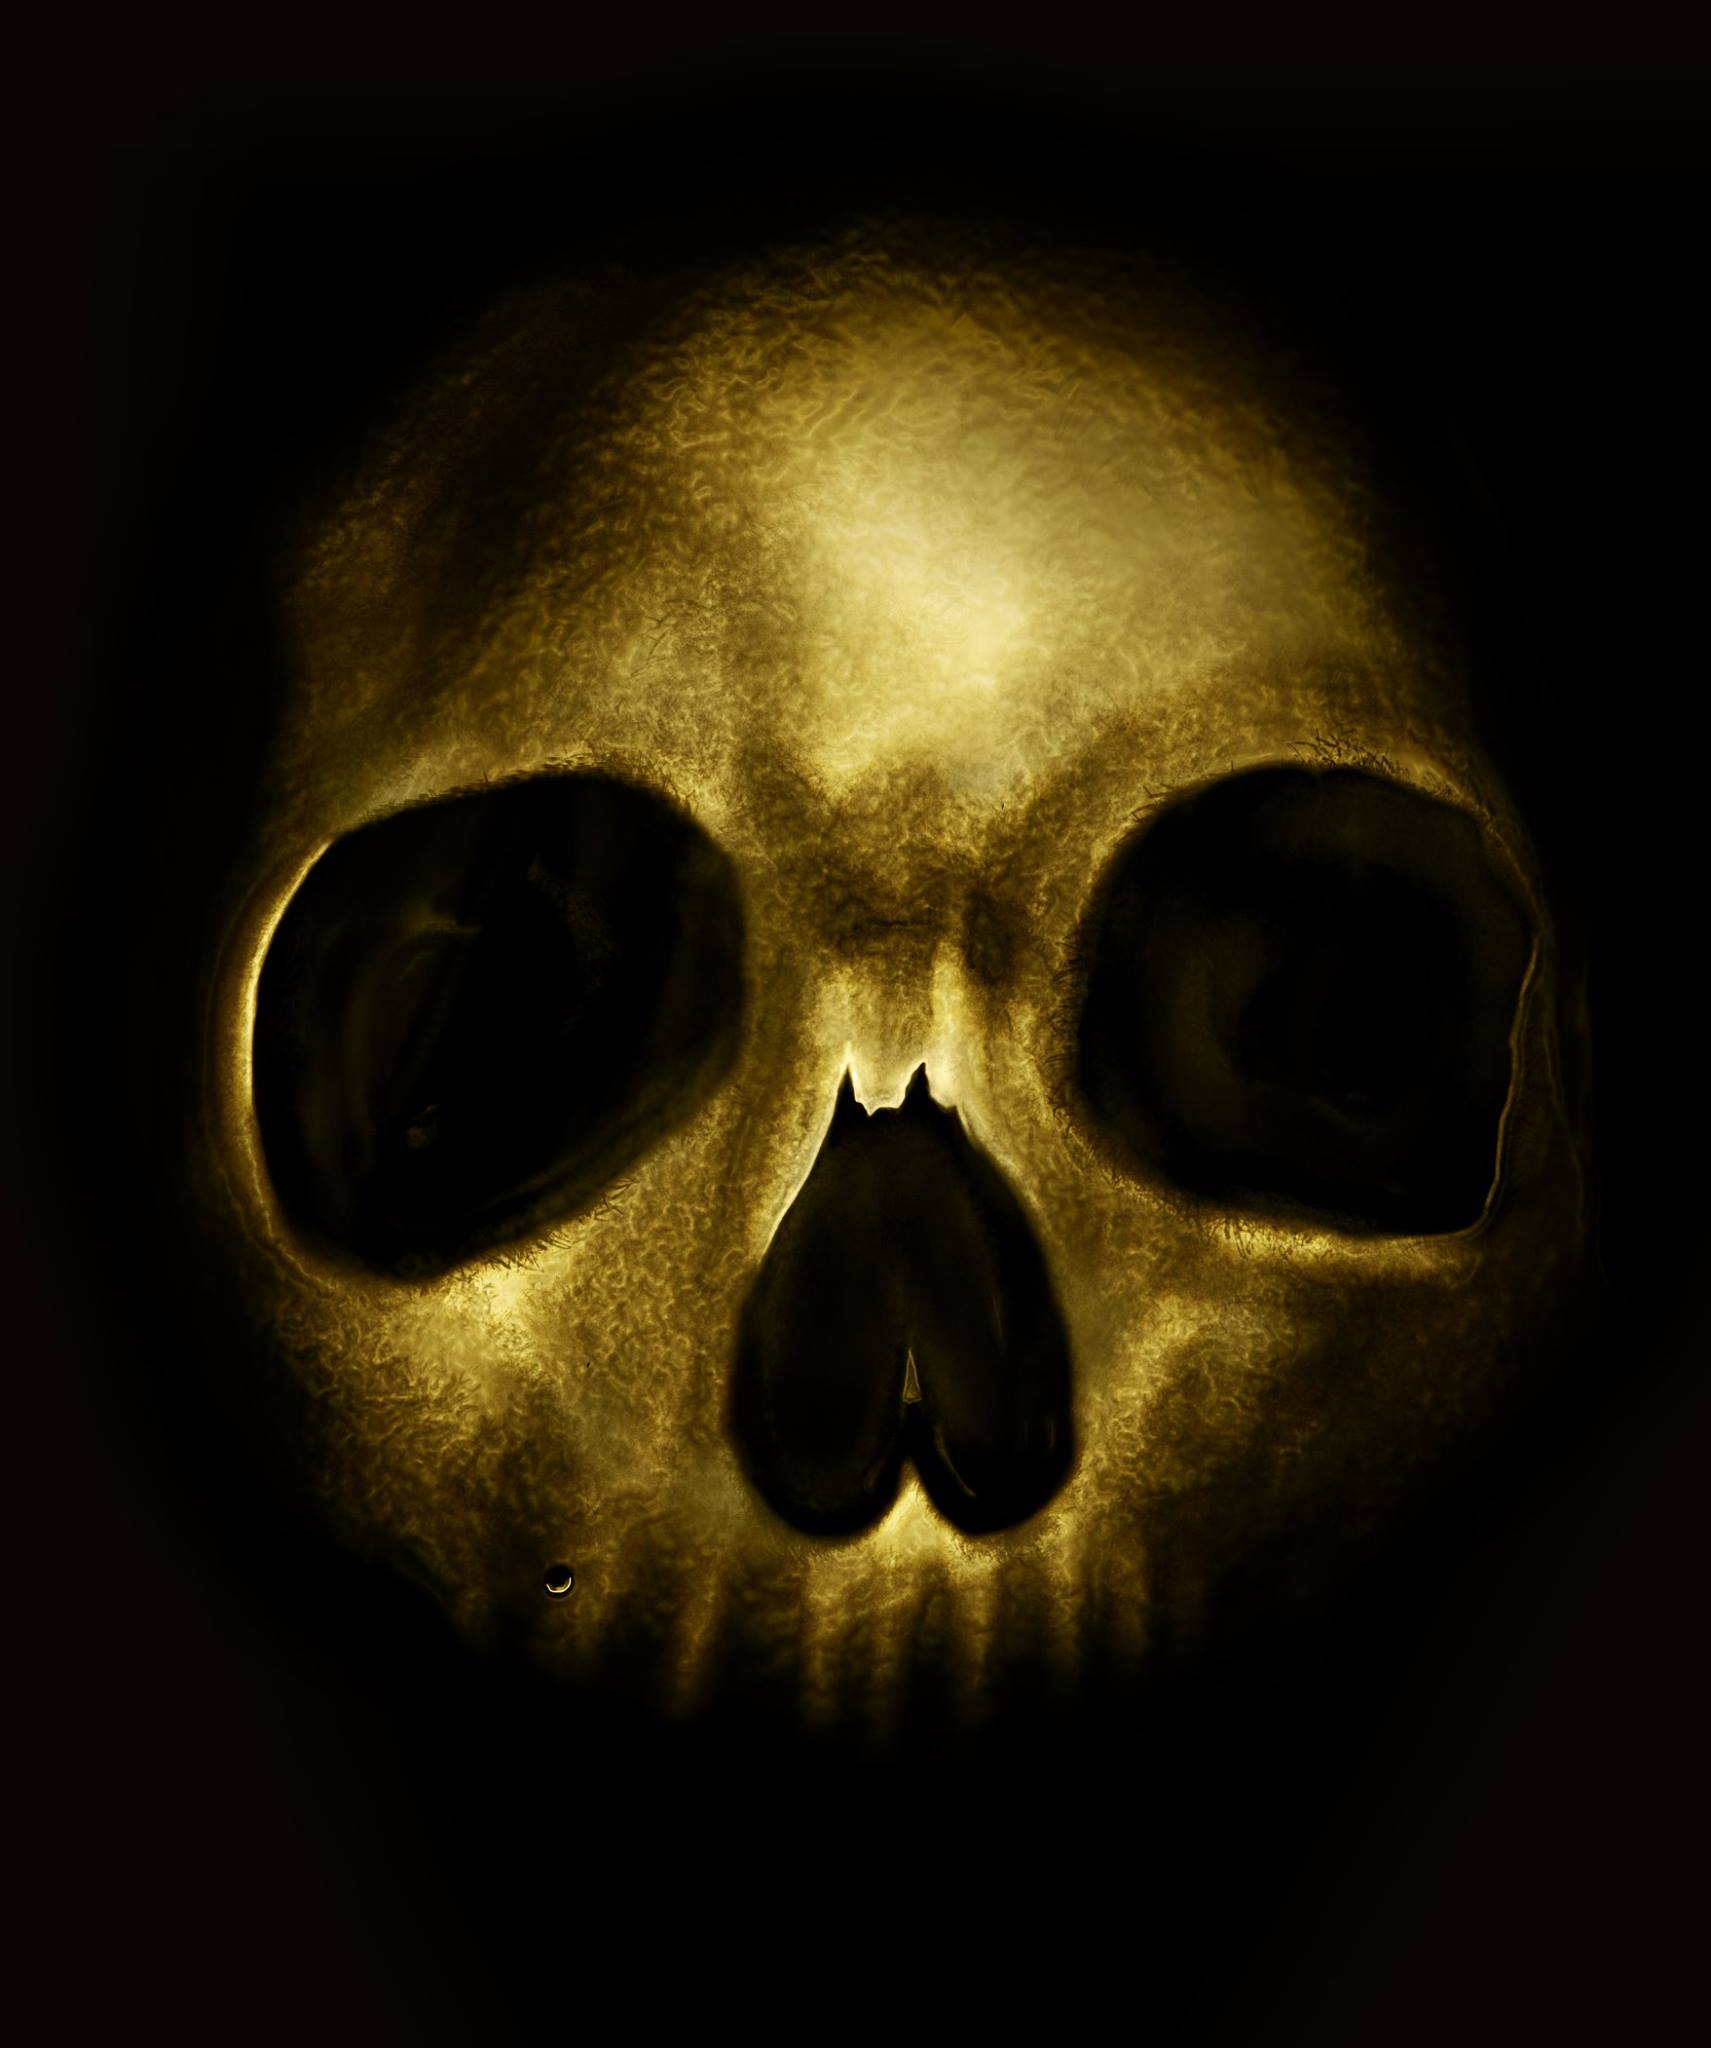 Golden Skull Realistic Painting By NickAce